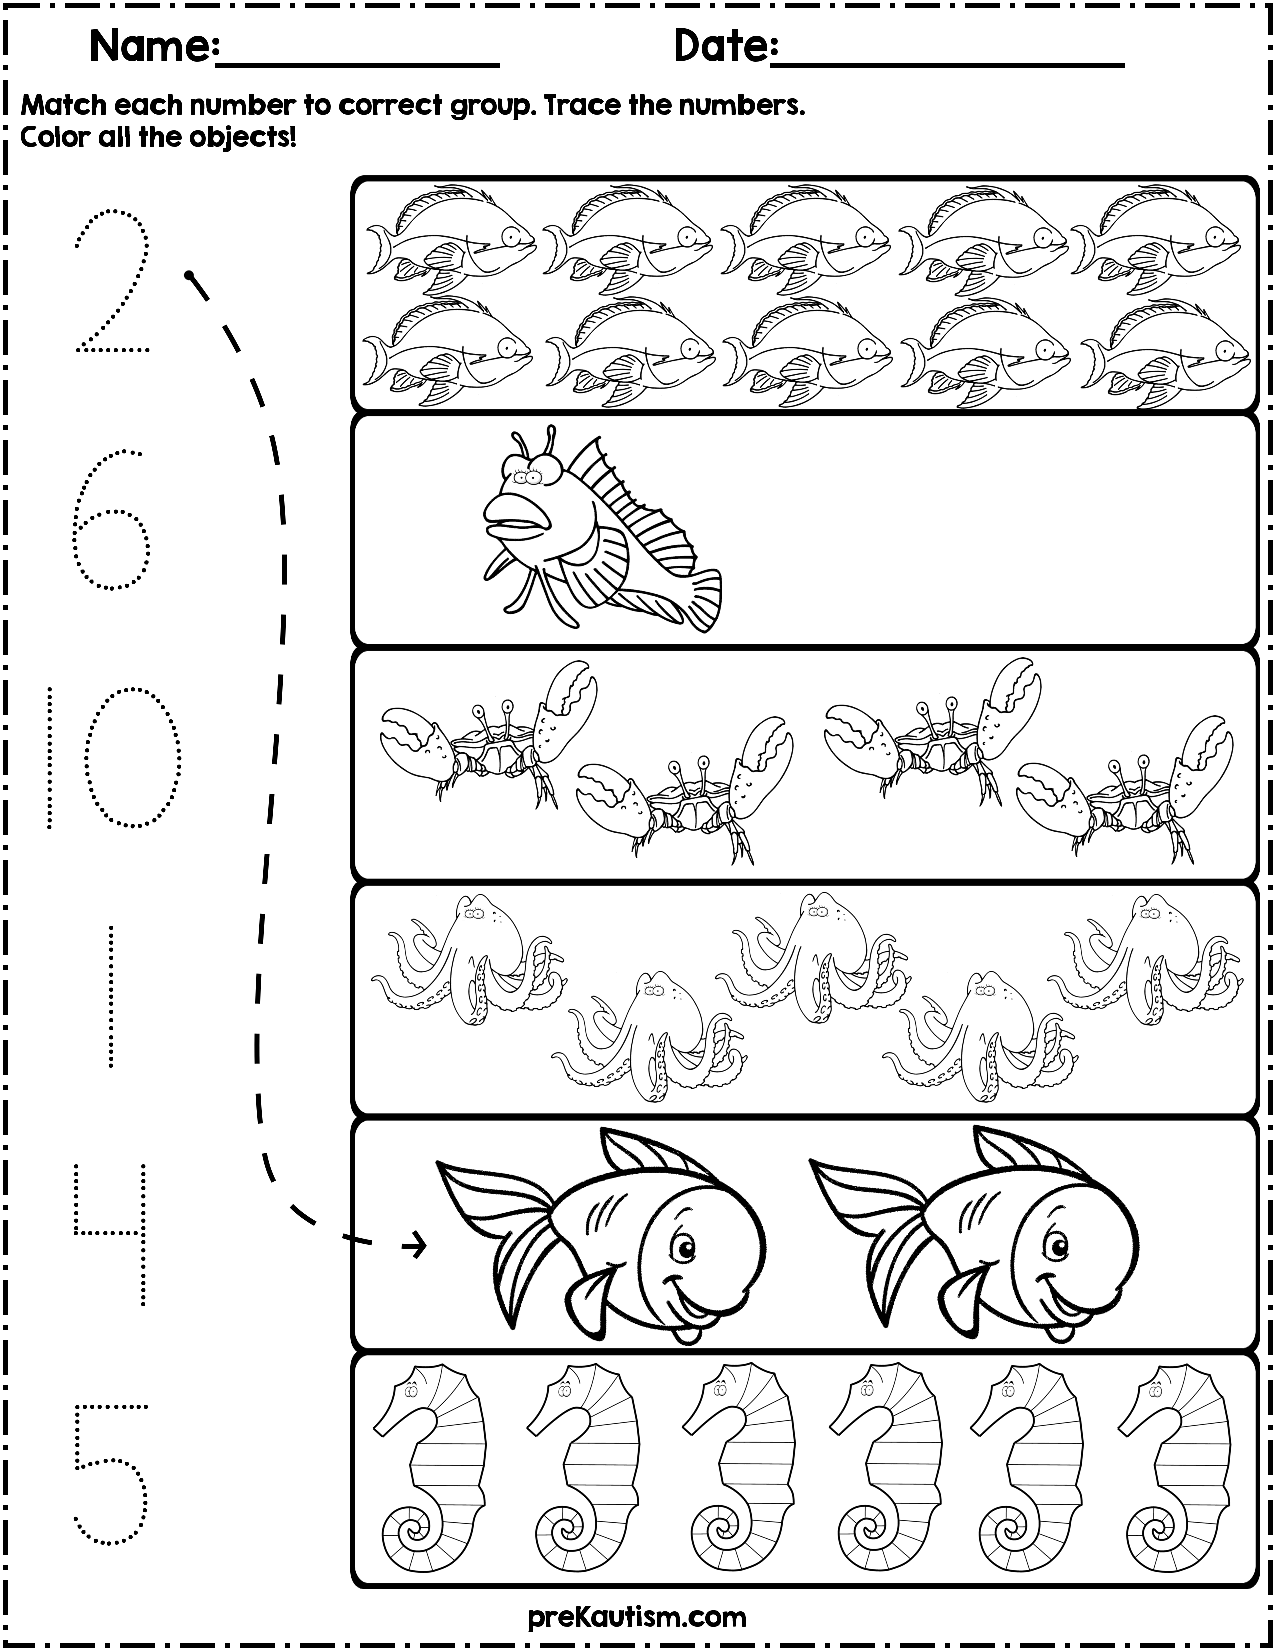 $1.50   Use these worksheets to teach quantity counting and number writing!  Pack includes 10 ocean animal the…   Numbers preschool [ 1650 x 1275 Pixel ]